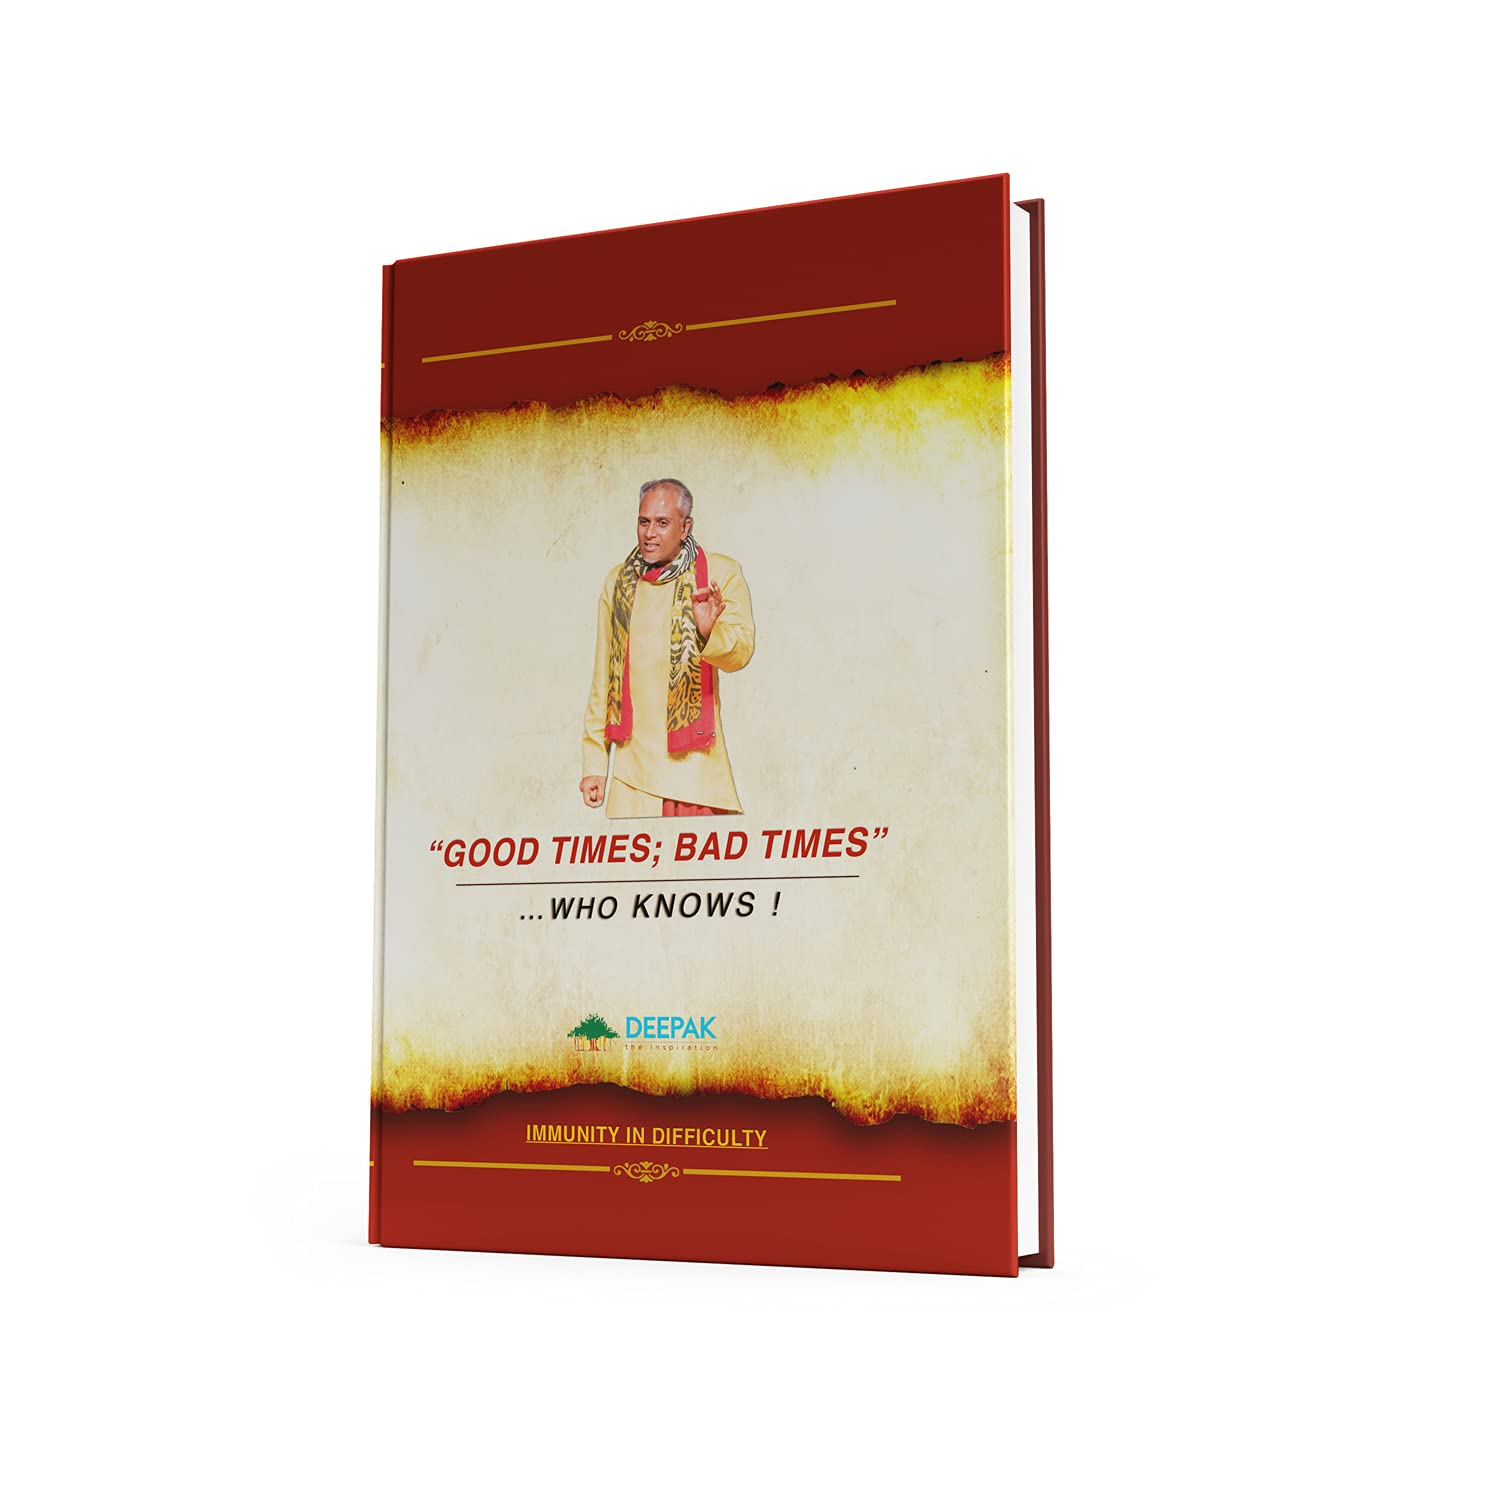 Dr.Deepak Ajit Shinde Good times Bad times, who knows? A life changing motivational and self help book By Deepak Shinde